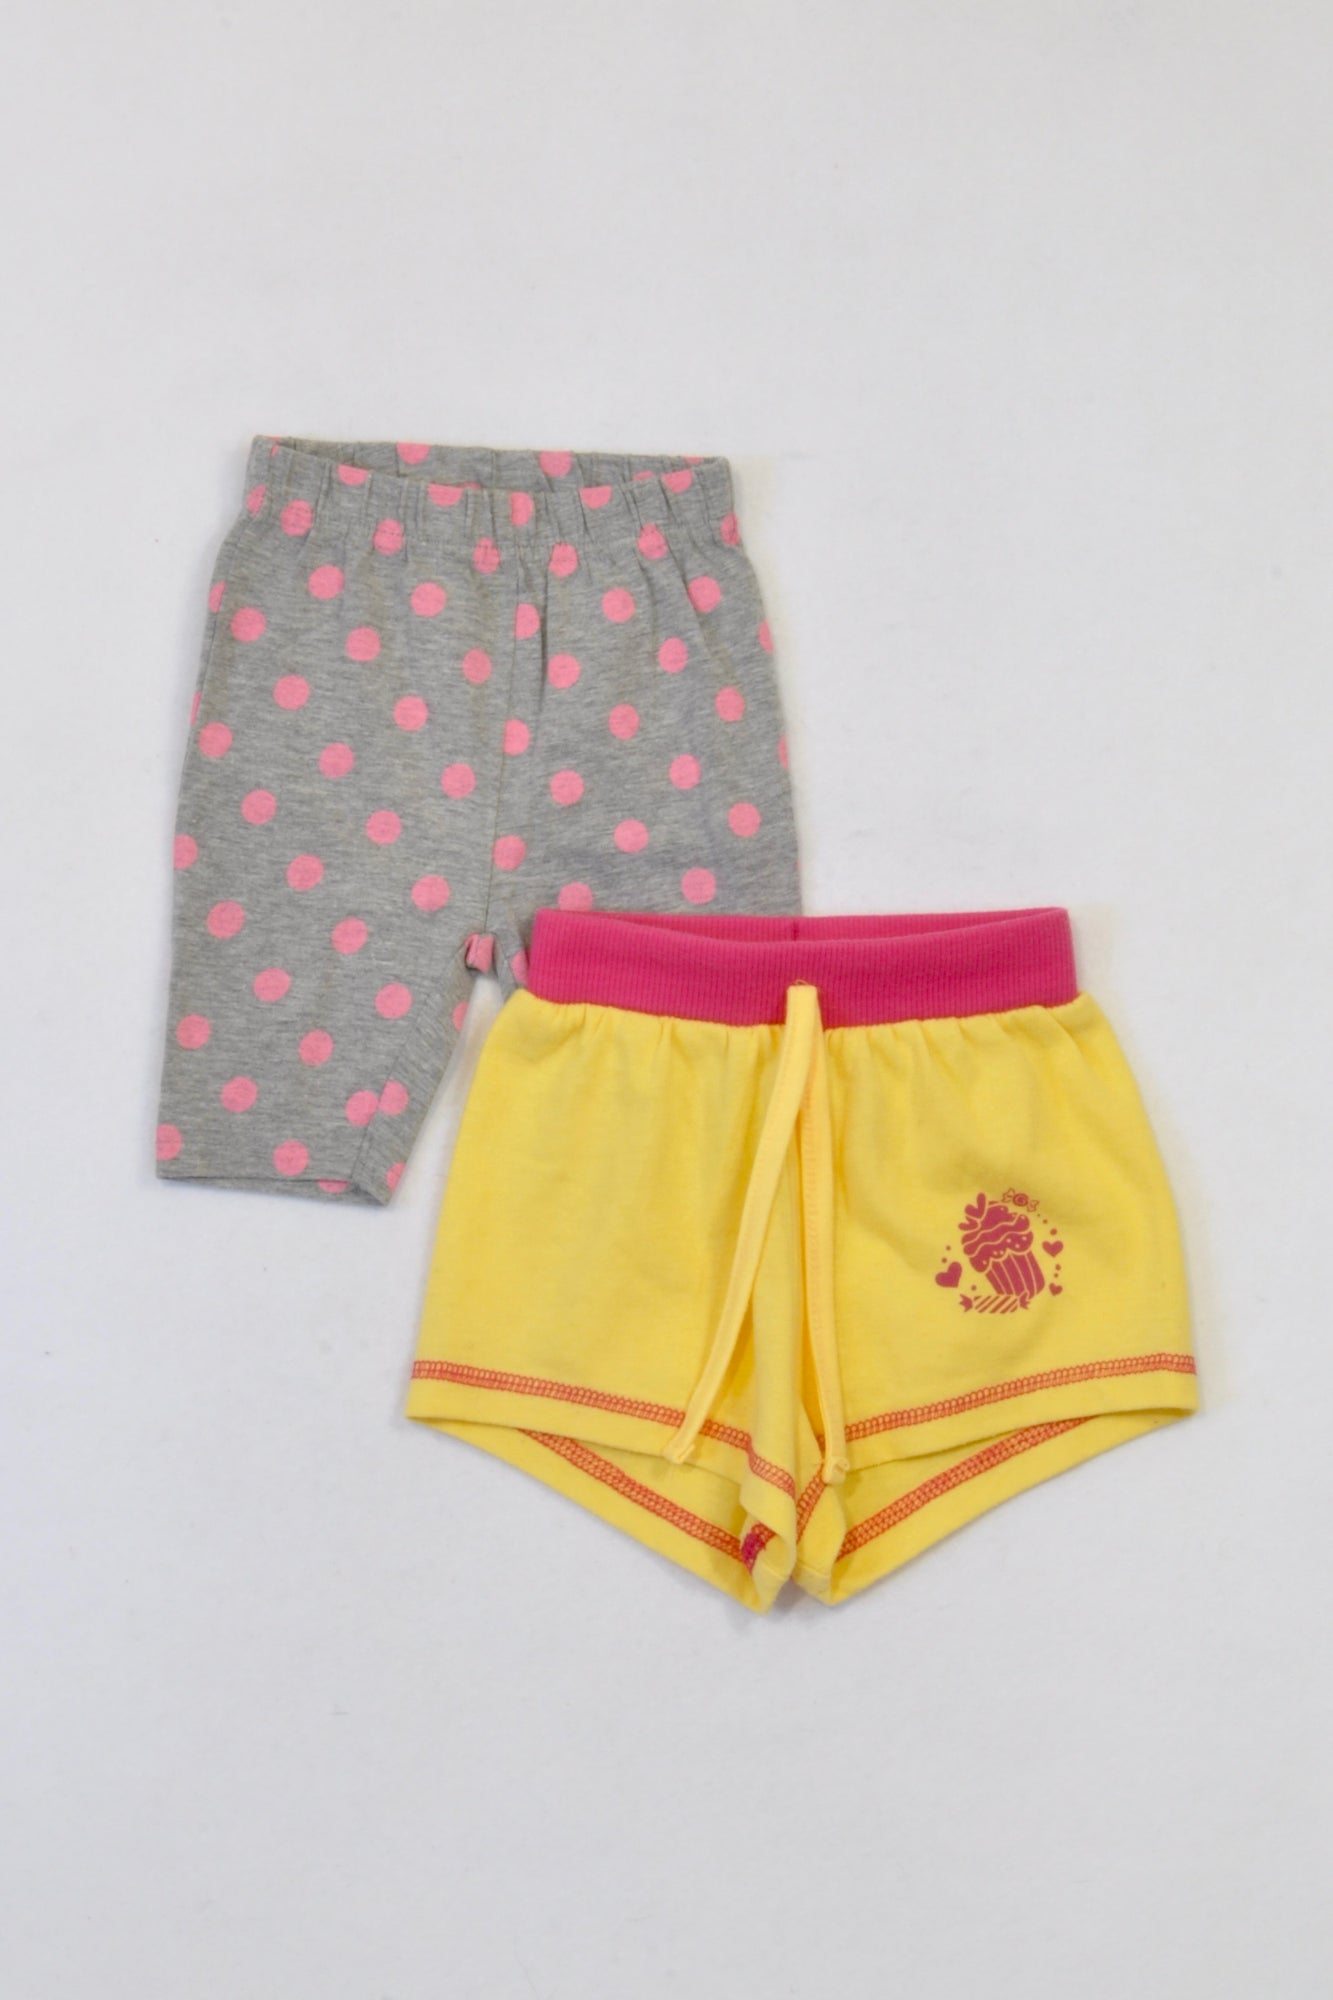 Ackermans Mixed Size Cupcake Bundle Pants Girls 3-6 months